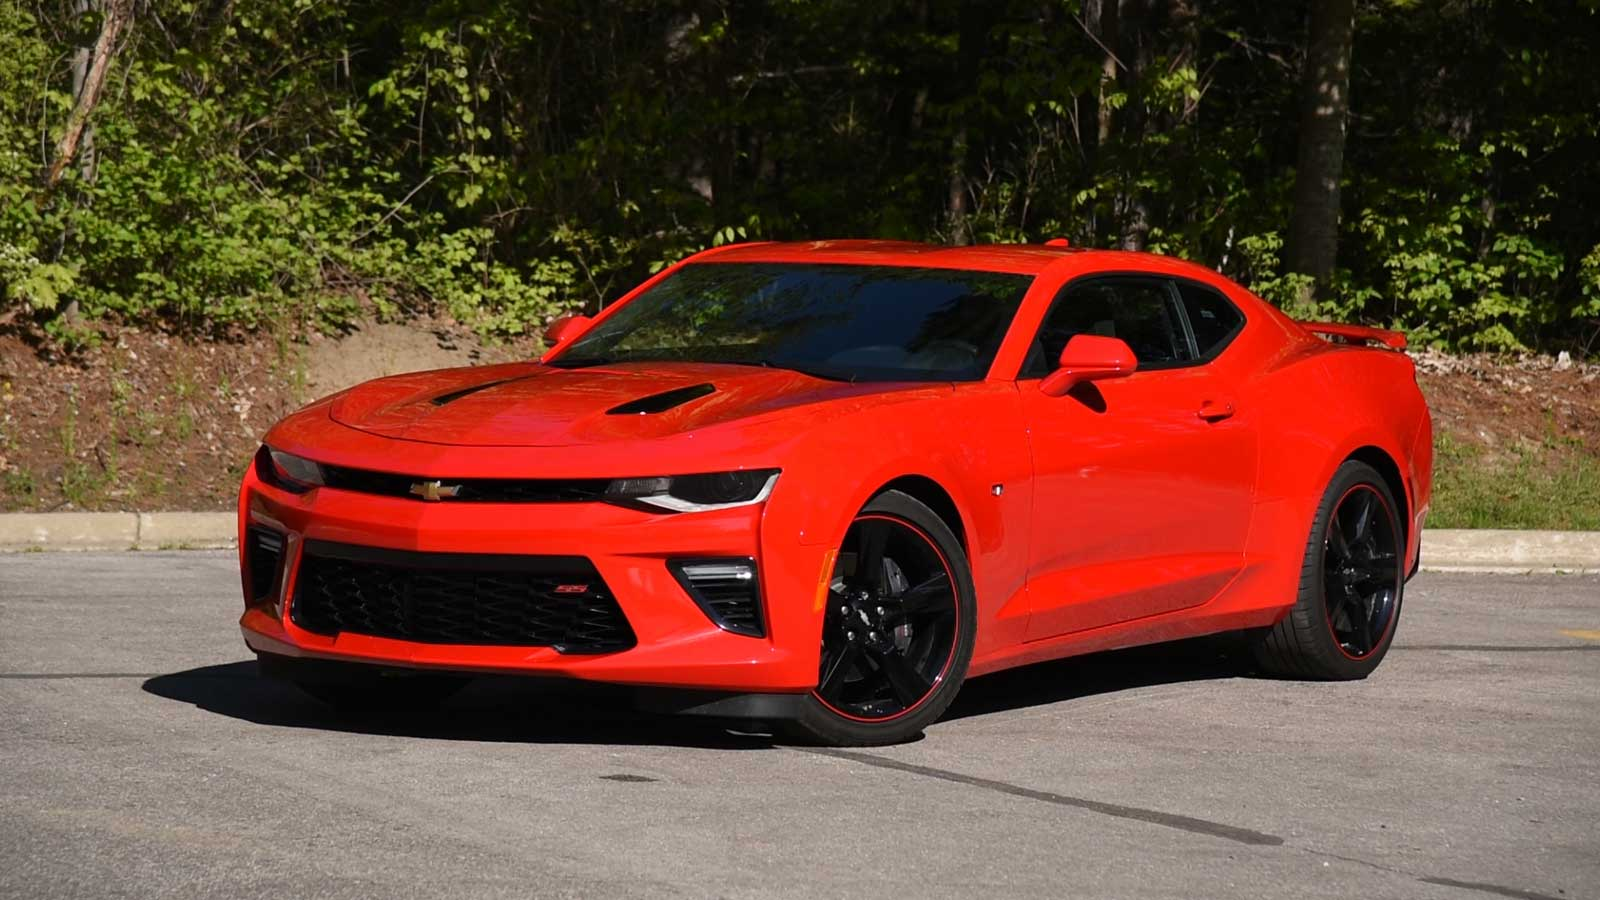 2016 chevrolet camaro ss review curbed with craig cole. Black Bedroom Furniture Sets. Home Design Ideas